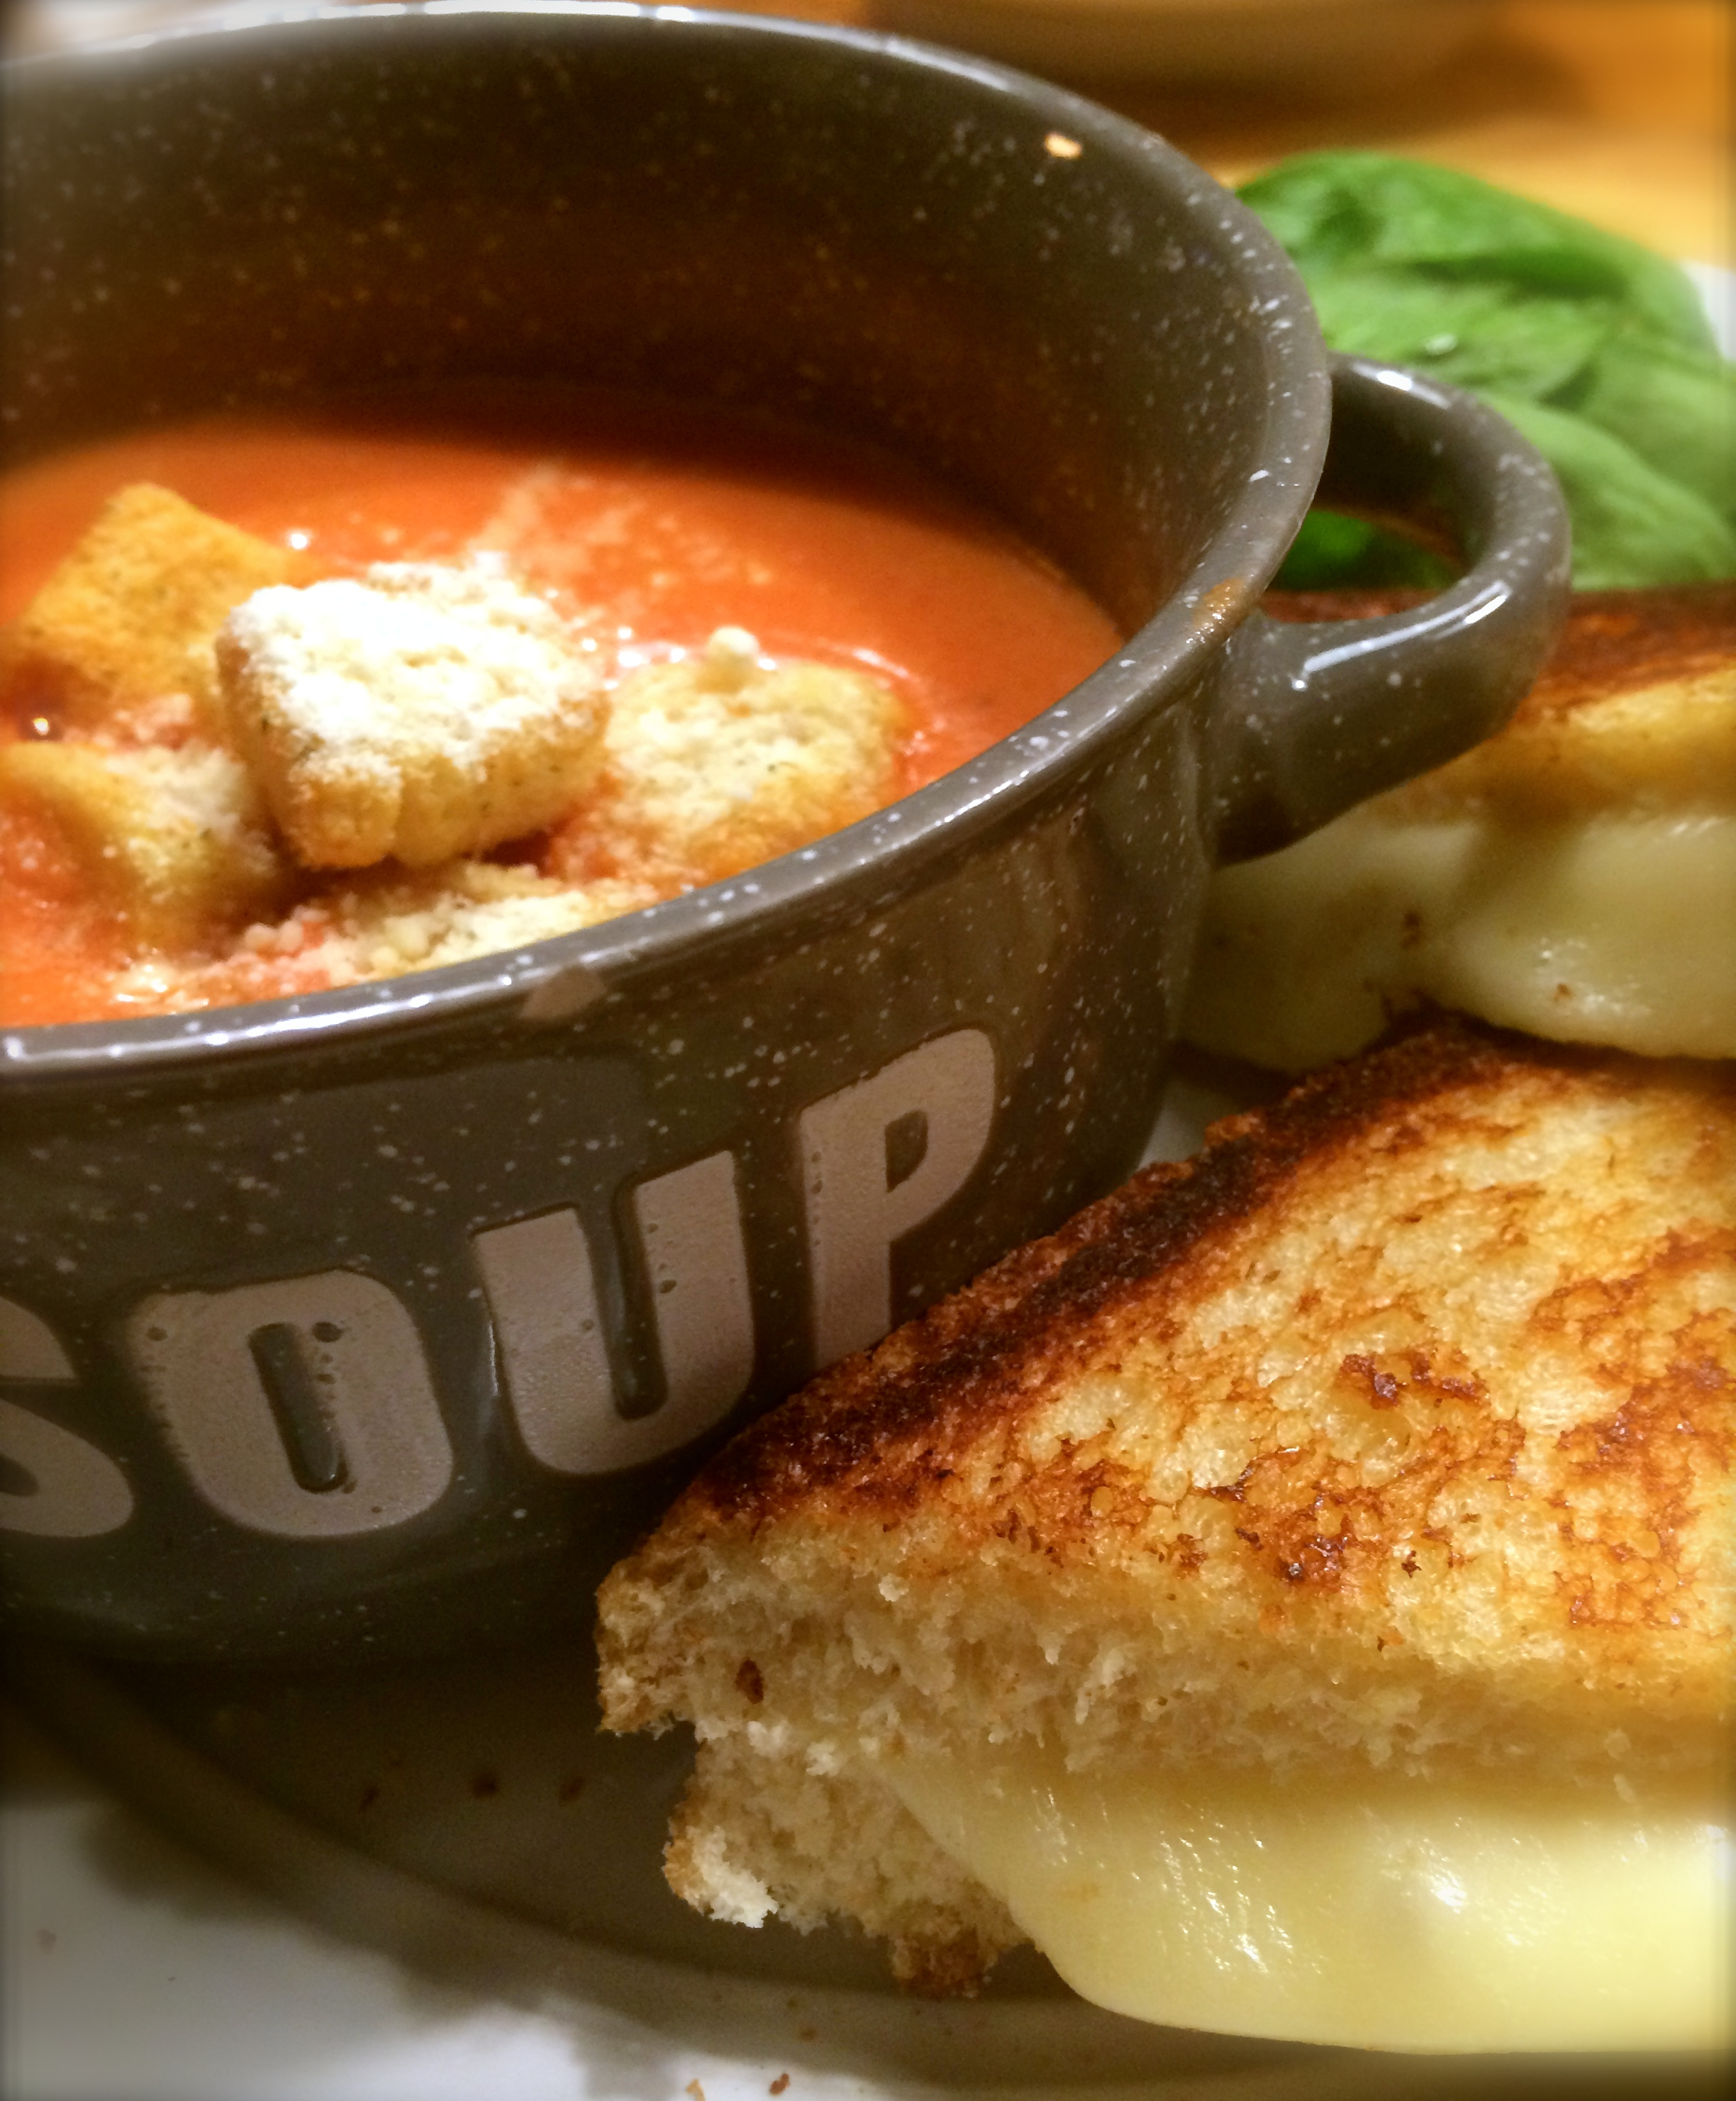 Tomato Basil Soup and Grilled Mozzarella Sandwich